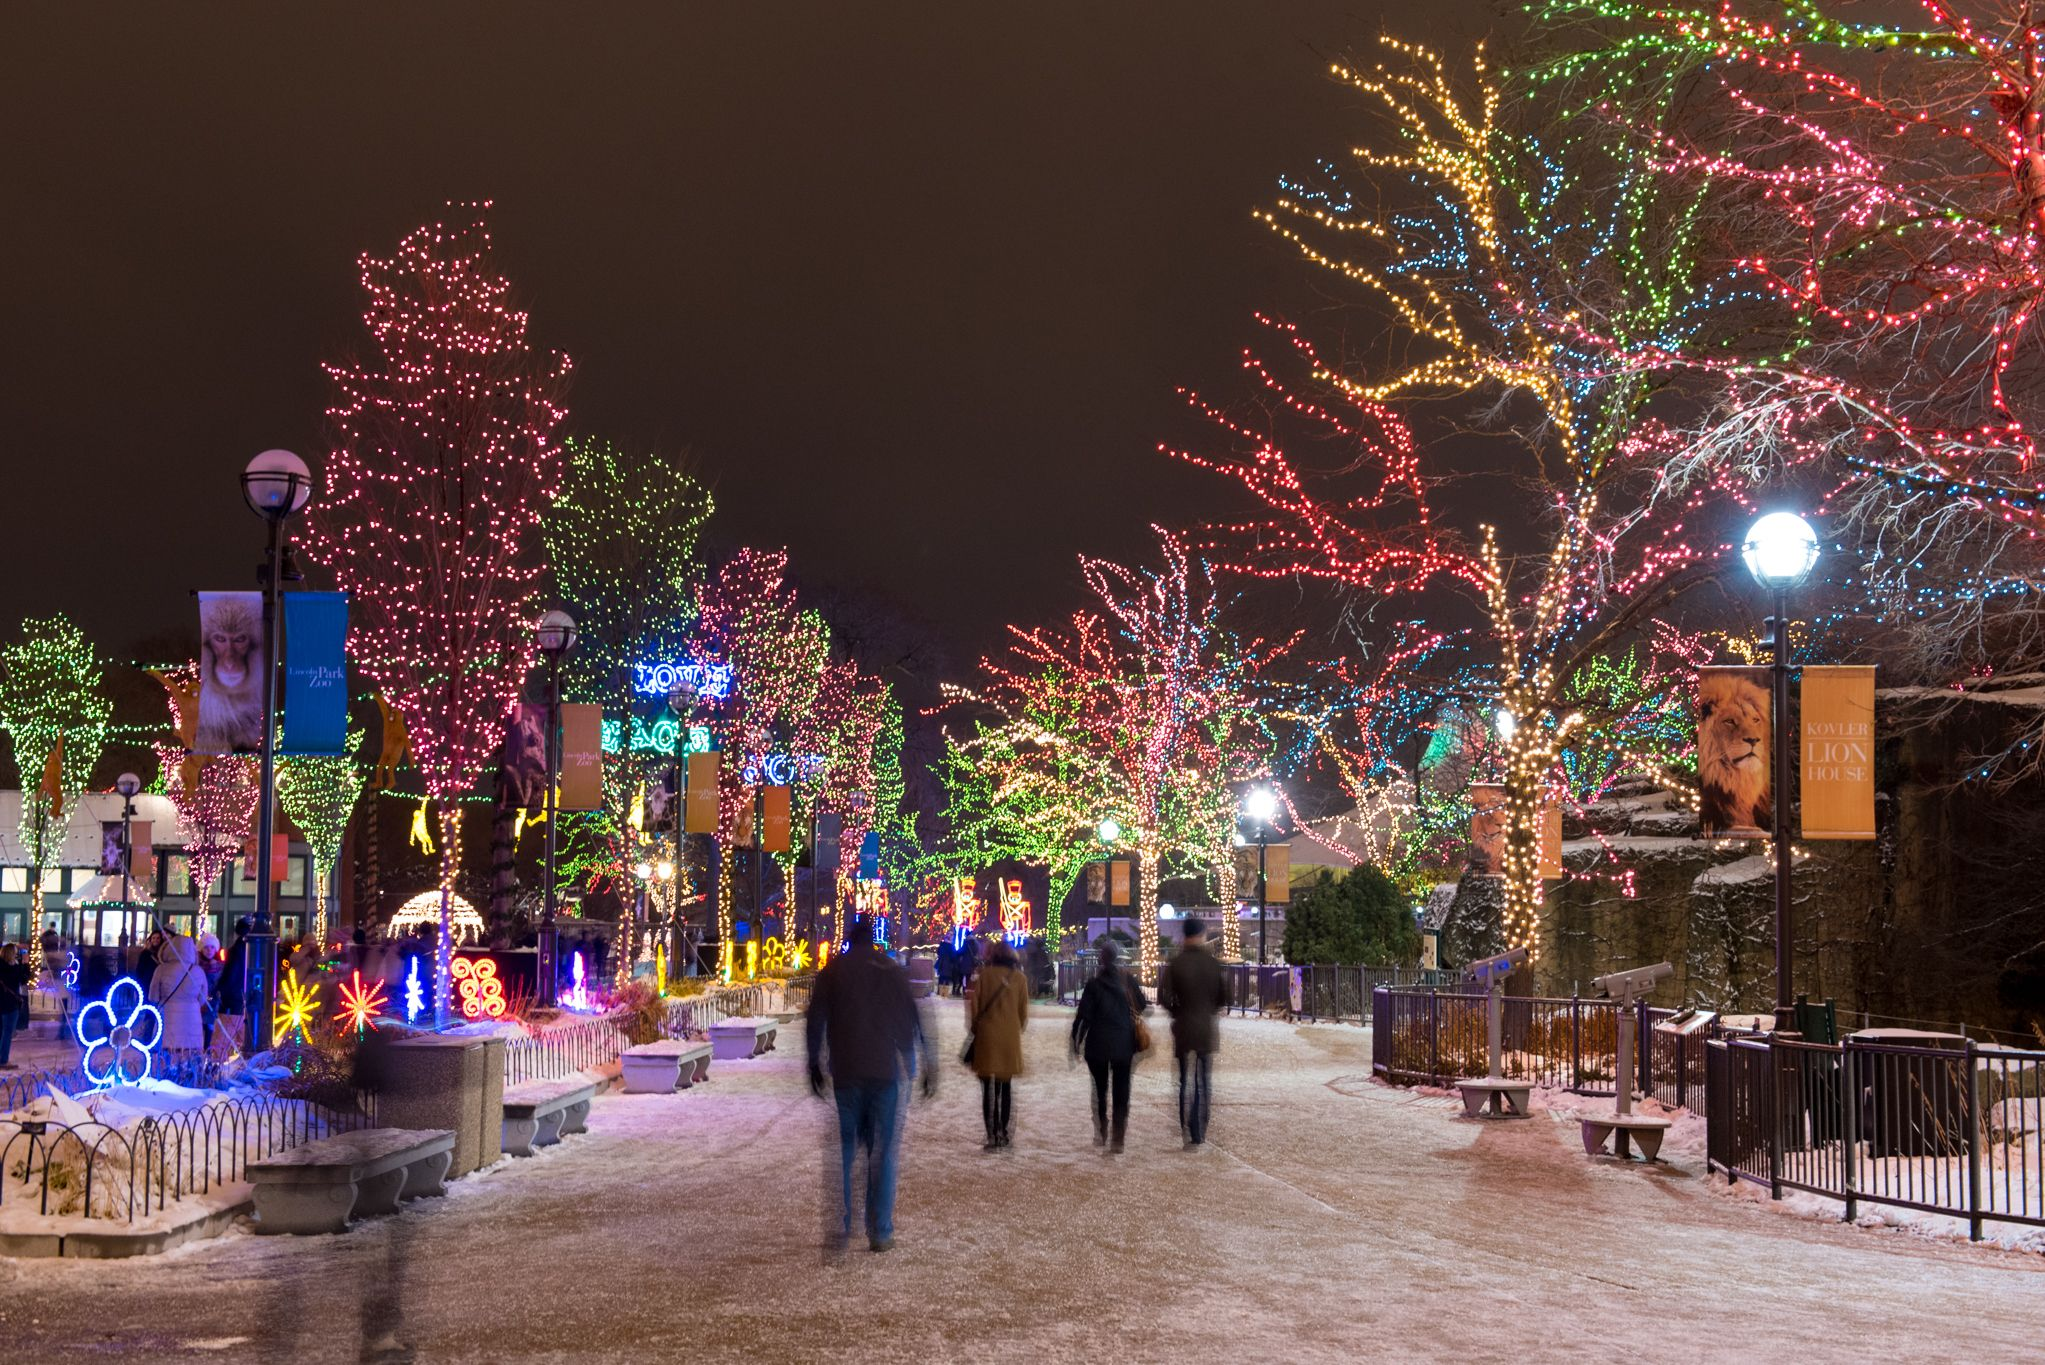 Twinkling Photos From Zoolights At Lincoln Park Zoo Chicago Christmas Zoo Lights Chicago Winter